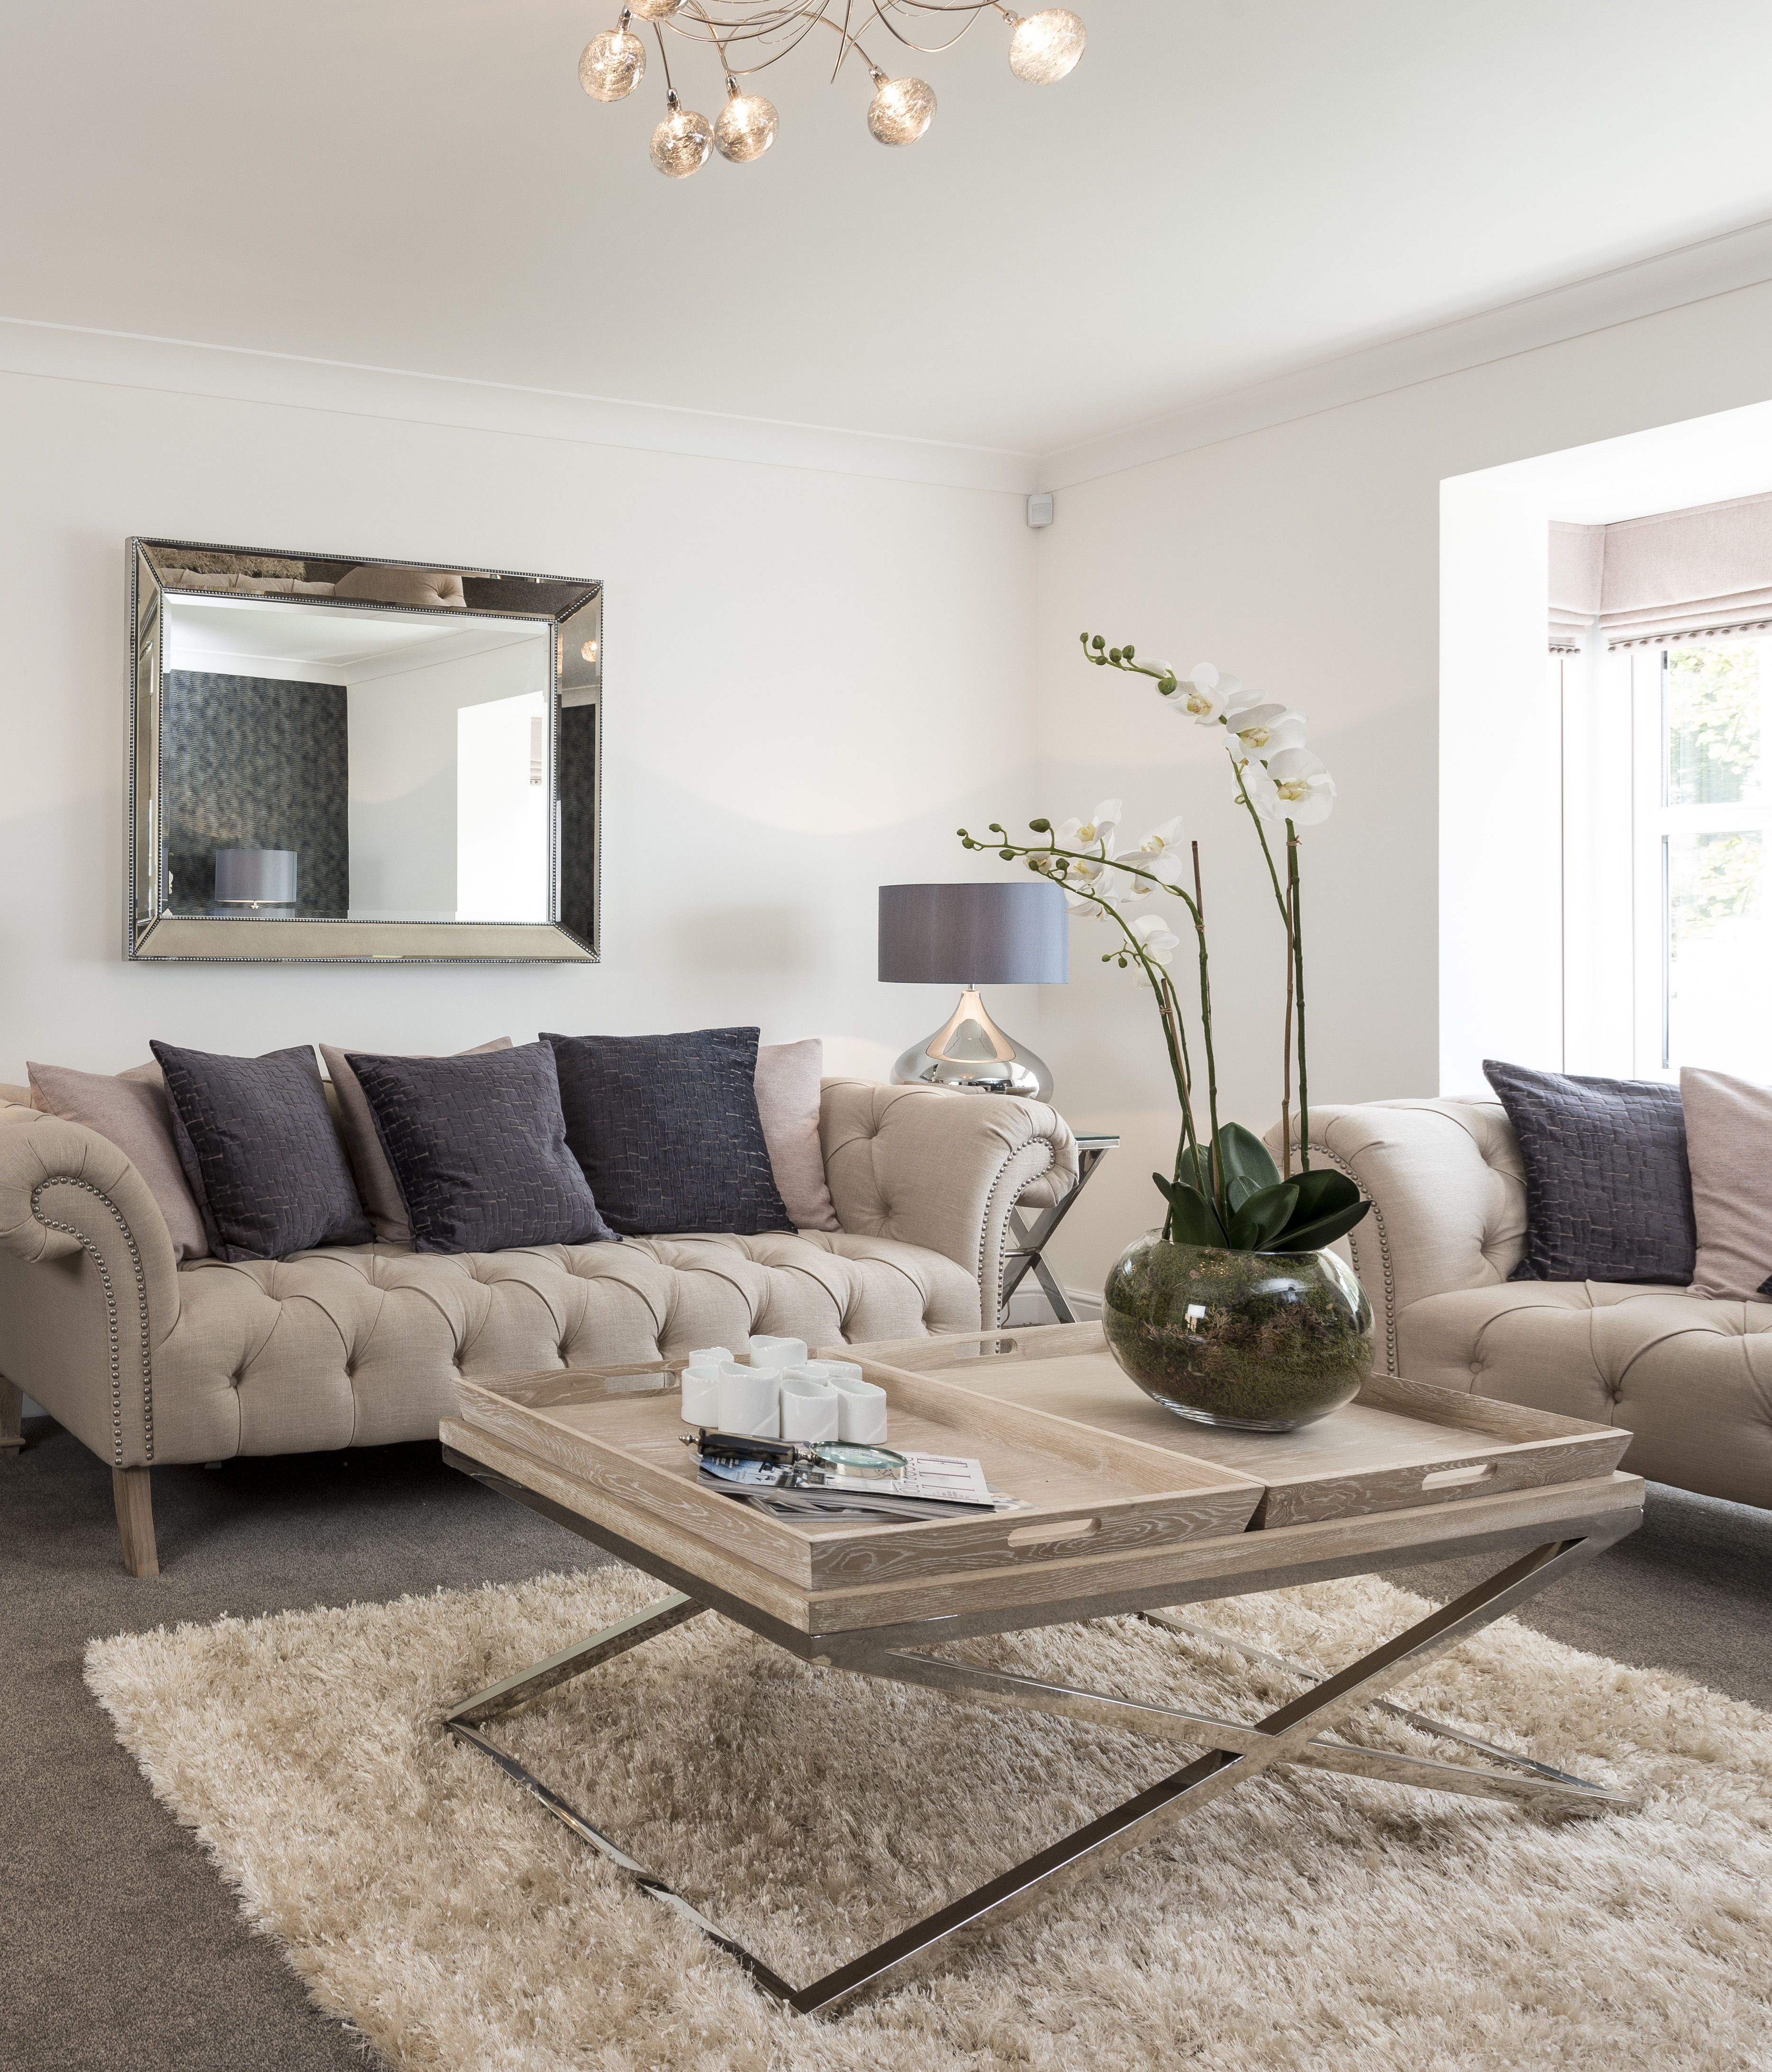 Superb Lovely Classic Sofa Grey Carpet Living Room Beige Living Caraccident5 Cool Chair Designs And Ideas Caraccident5Info